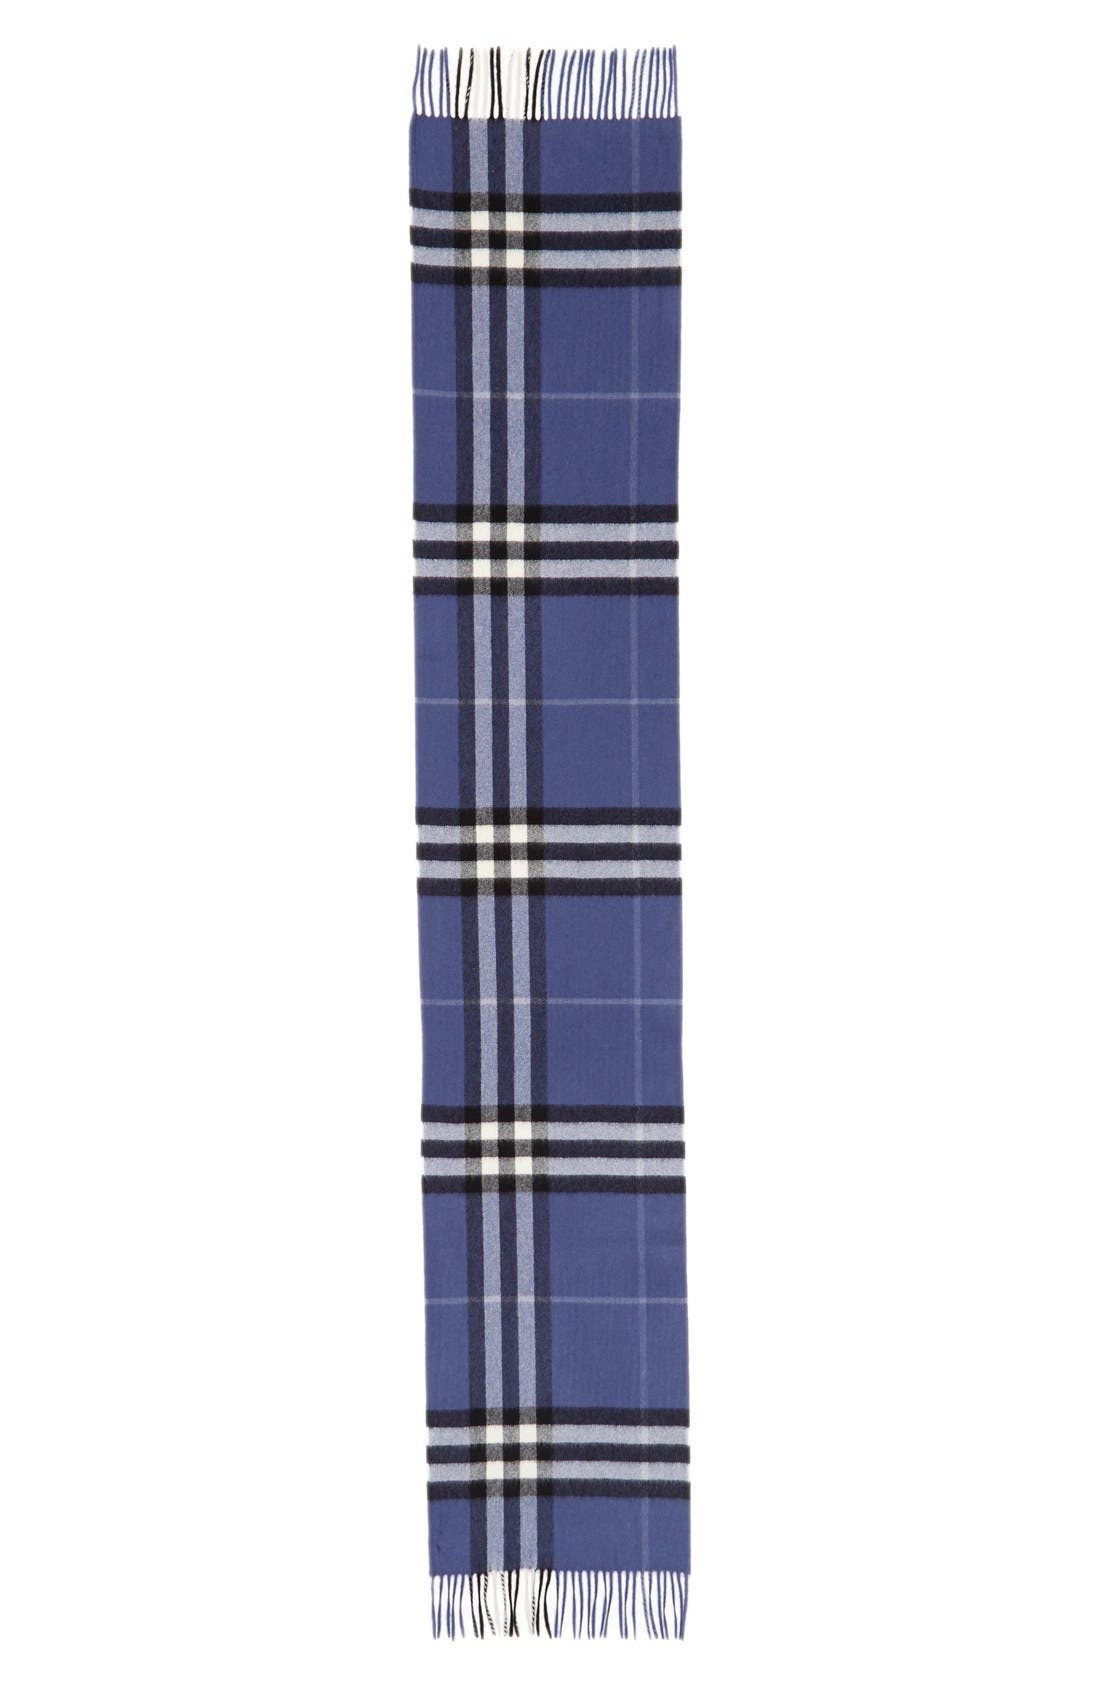 BURBERRY,                             Giant Check Cashmere Scarf,                             Alternate thumbnail 2, color,                             400